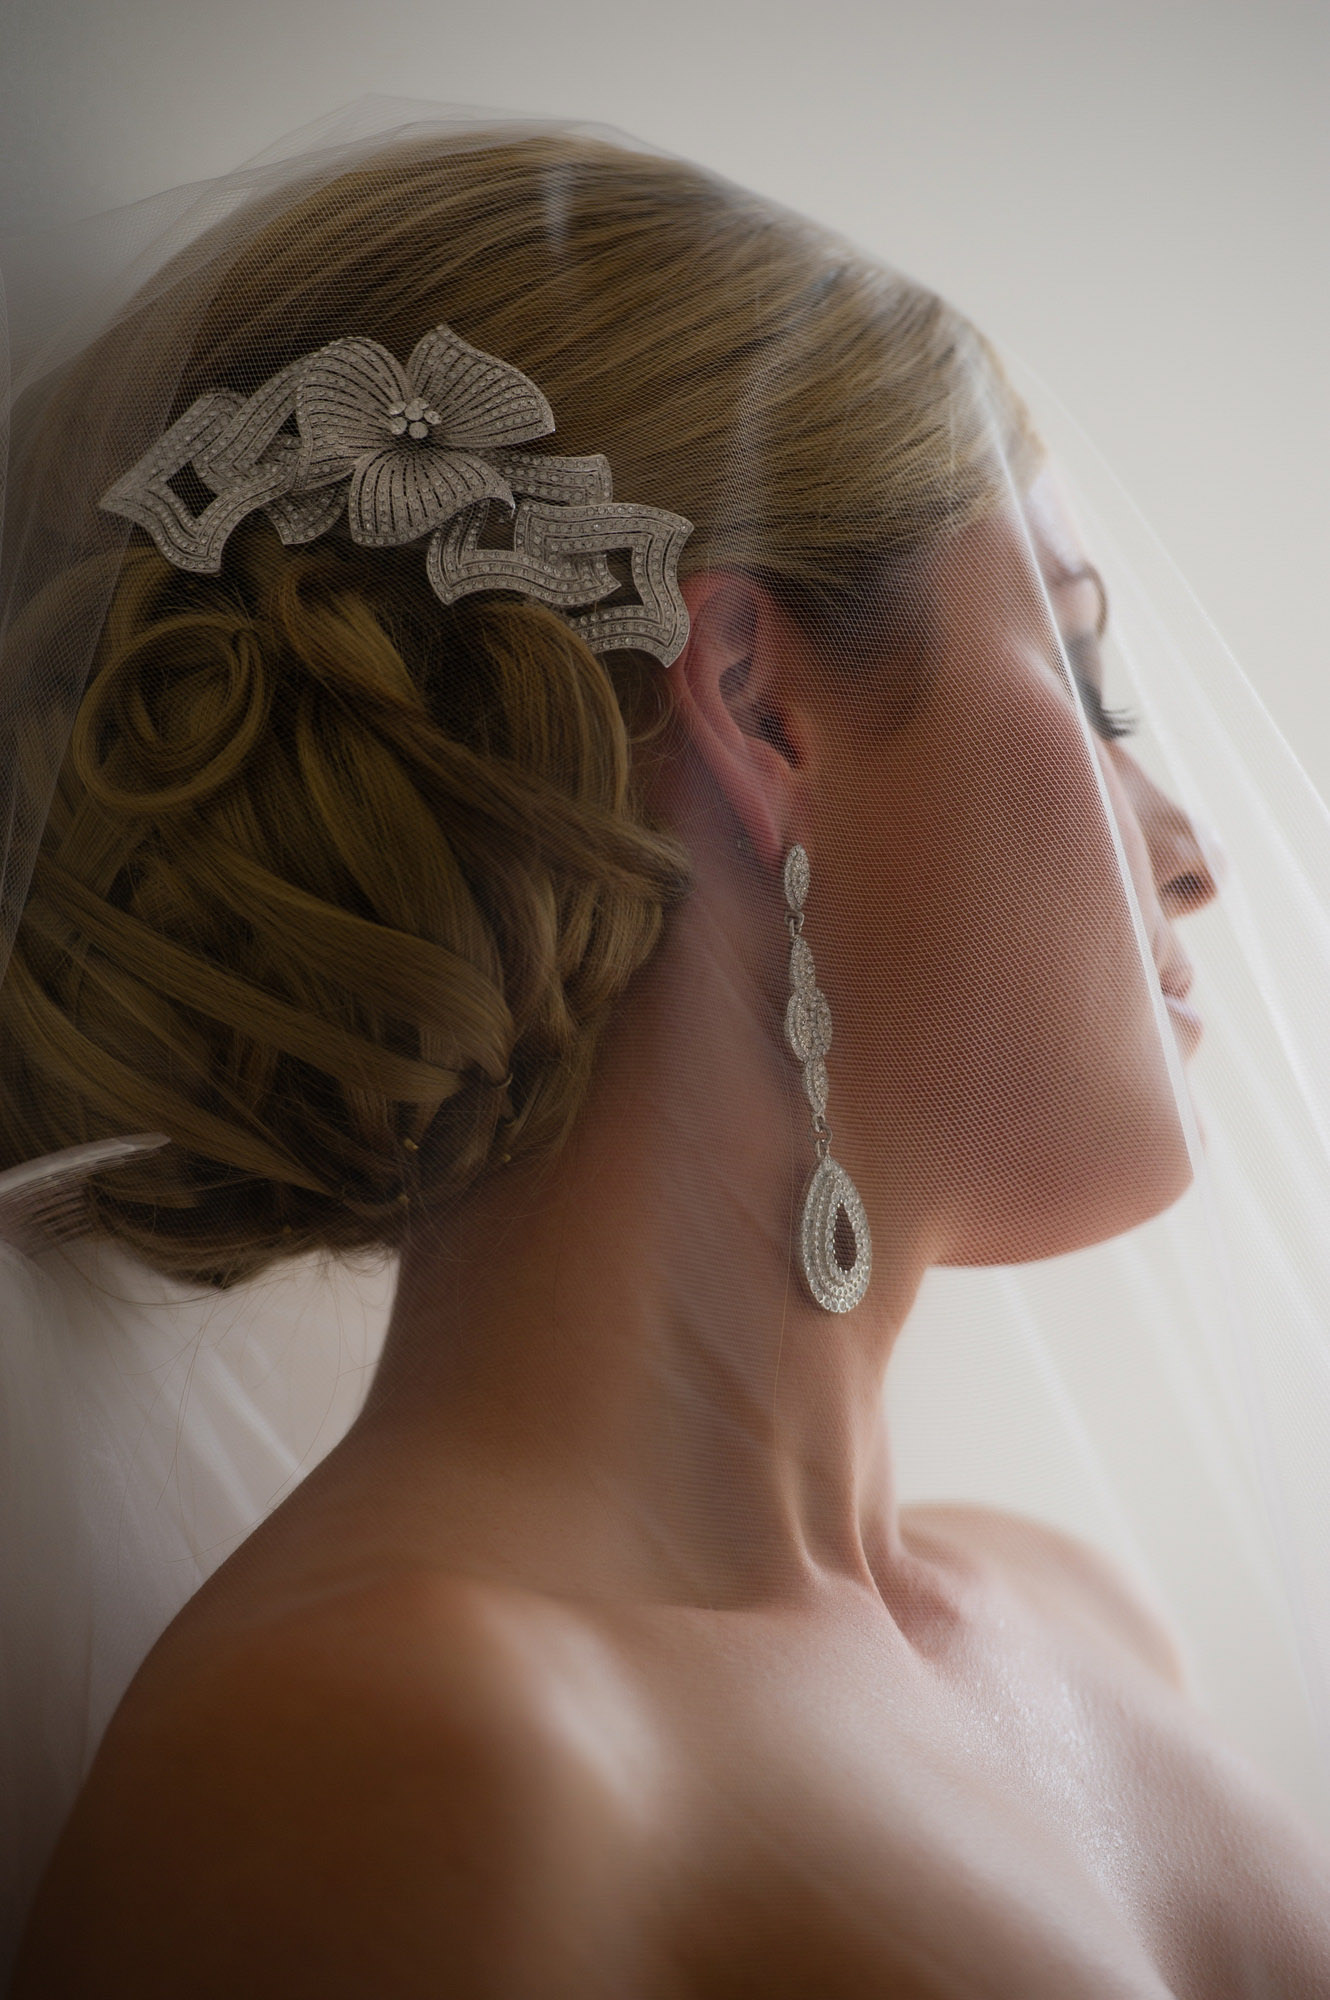 Portrait of bride with diamond bow hair accessory  by Jerry Ghionis - Australia and Nevada